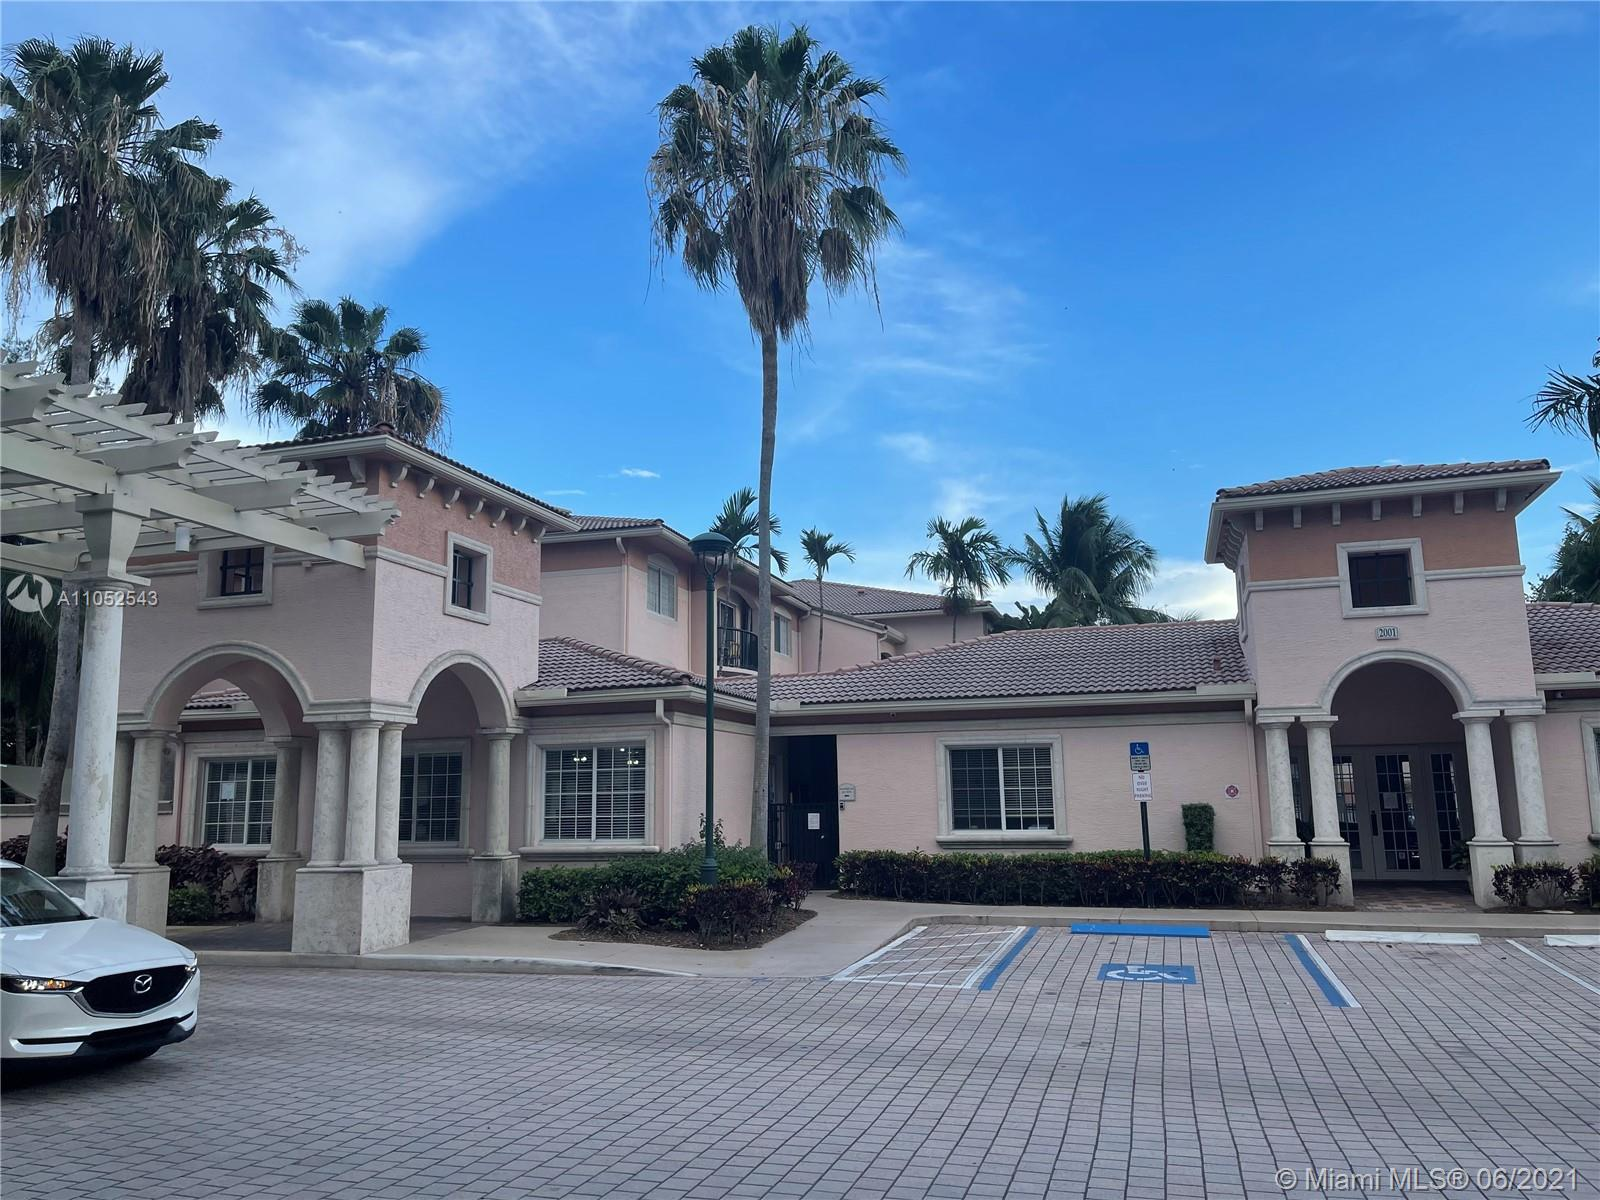 Fabulous one bedroom, one bathroom condo unit in the private community of Village East located in Ft. Lauderdale. Newly remodeled unit has new flooring, new appliances, new AC, and new kitchen and bathroom cabinets. The unit has two walk-in closets, a linen closet, washer and dryer room, and spacious balcony. Village East community offers great amenities including a pool area, gym, bbq area, business center and car wash area. Great location, walking distance from local supermarket and shopping center and just 6 miles from Ft. Lauderdale beach. New fridge is in backorder and will be delivered in July.